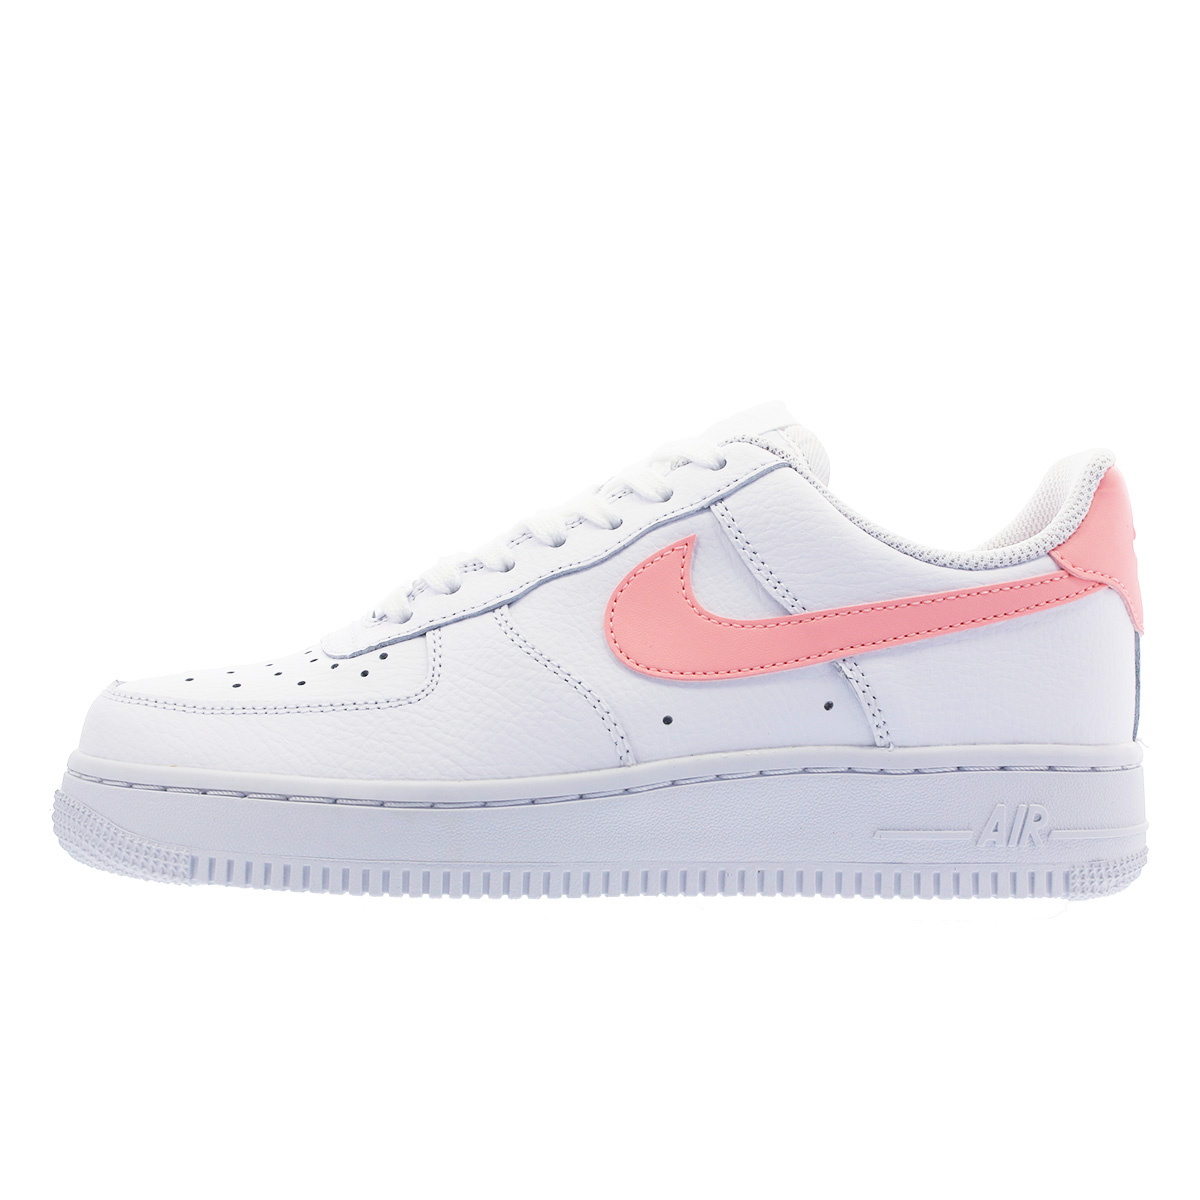 5a55a3caa8009 ... NIKE WMNS AIR FORCE 1 07 Nike women air force 1 07 WHITE/ORACLE PINK ...